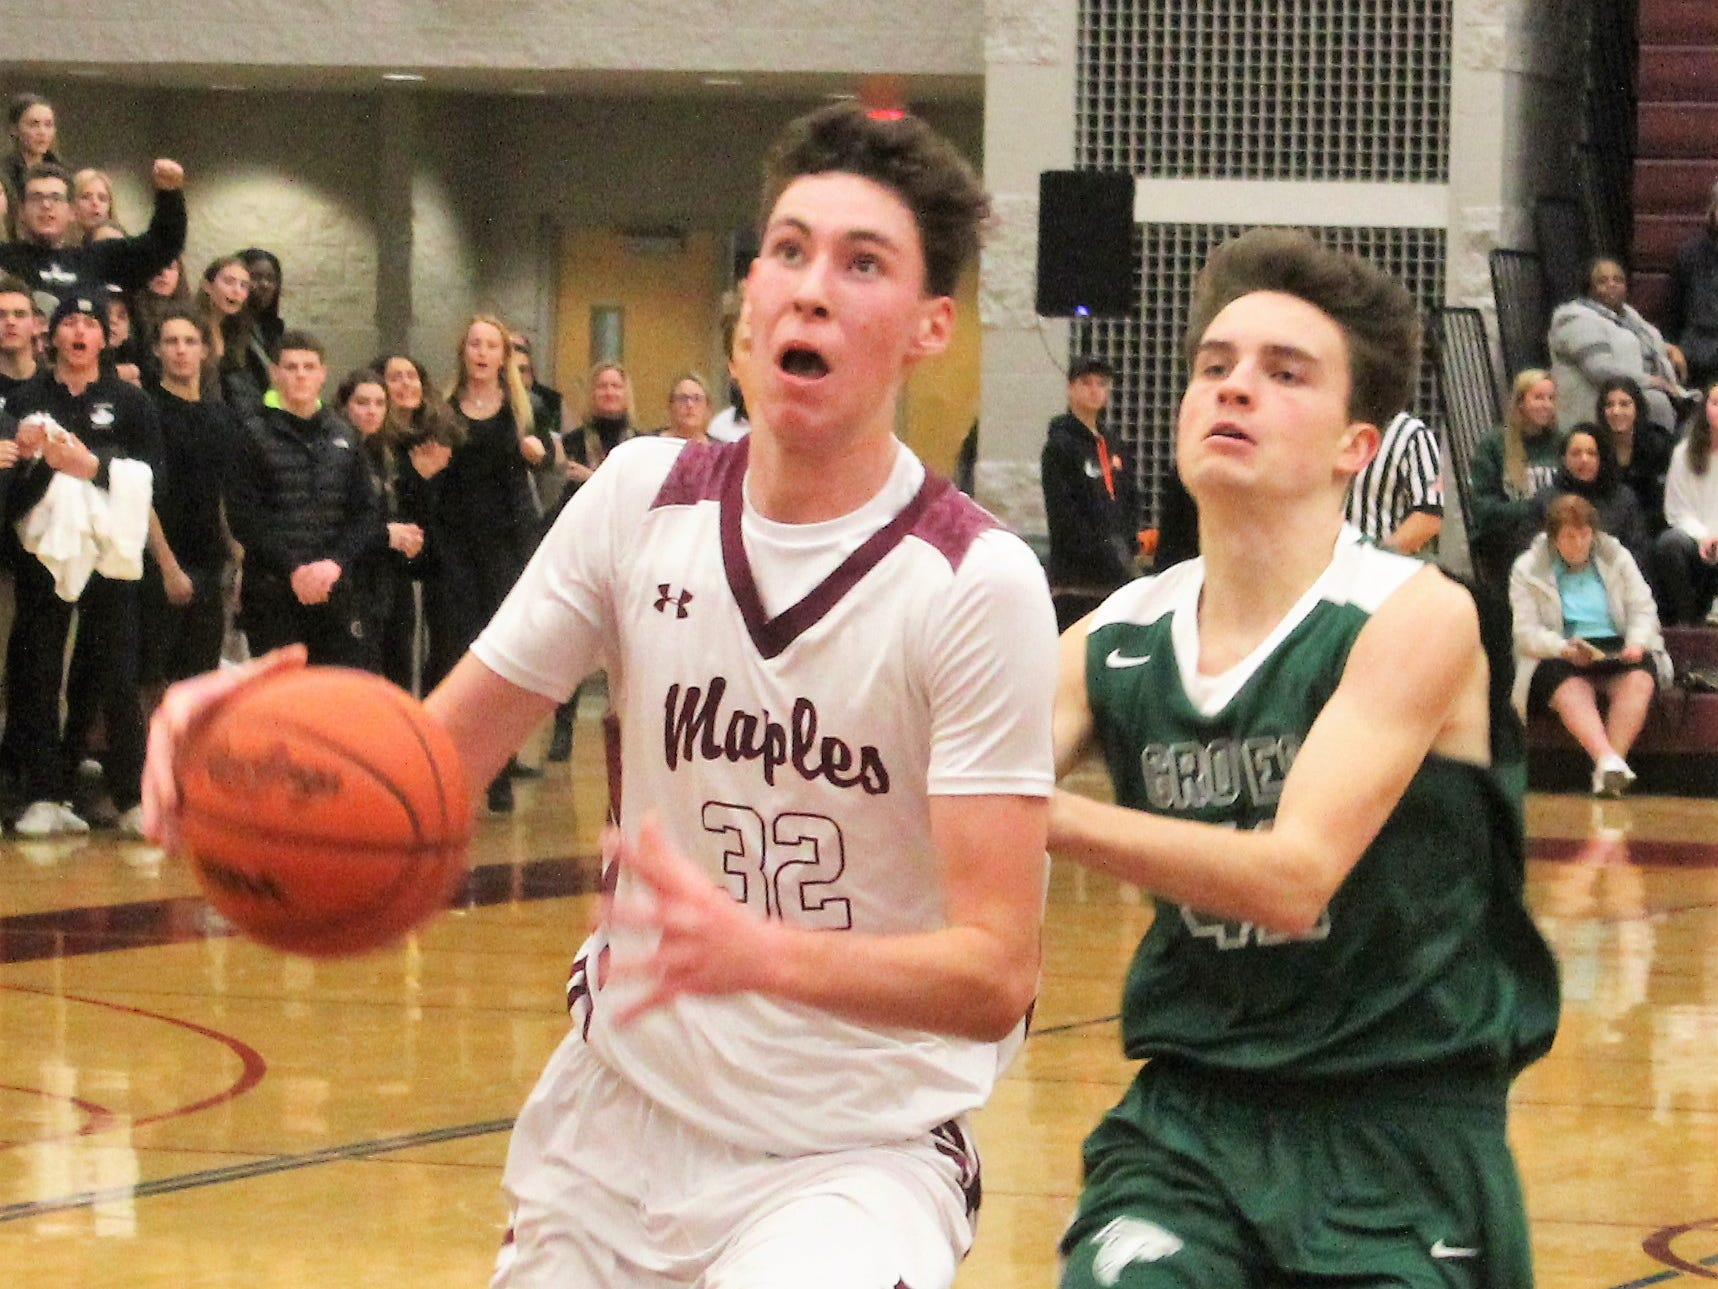 Visiting Groves defeated Seaholm, 62-53, in the only regular-season Battle of Birmingham in boys basketball this season.